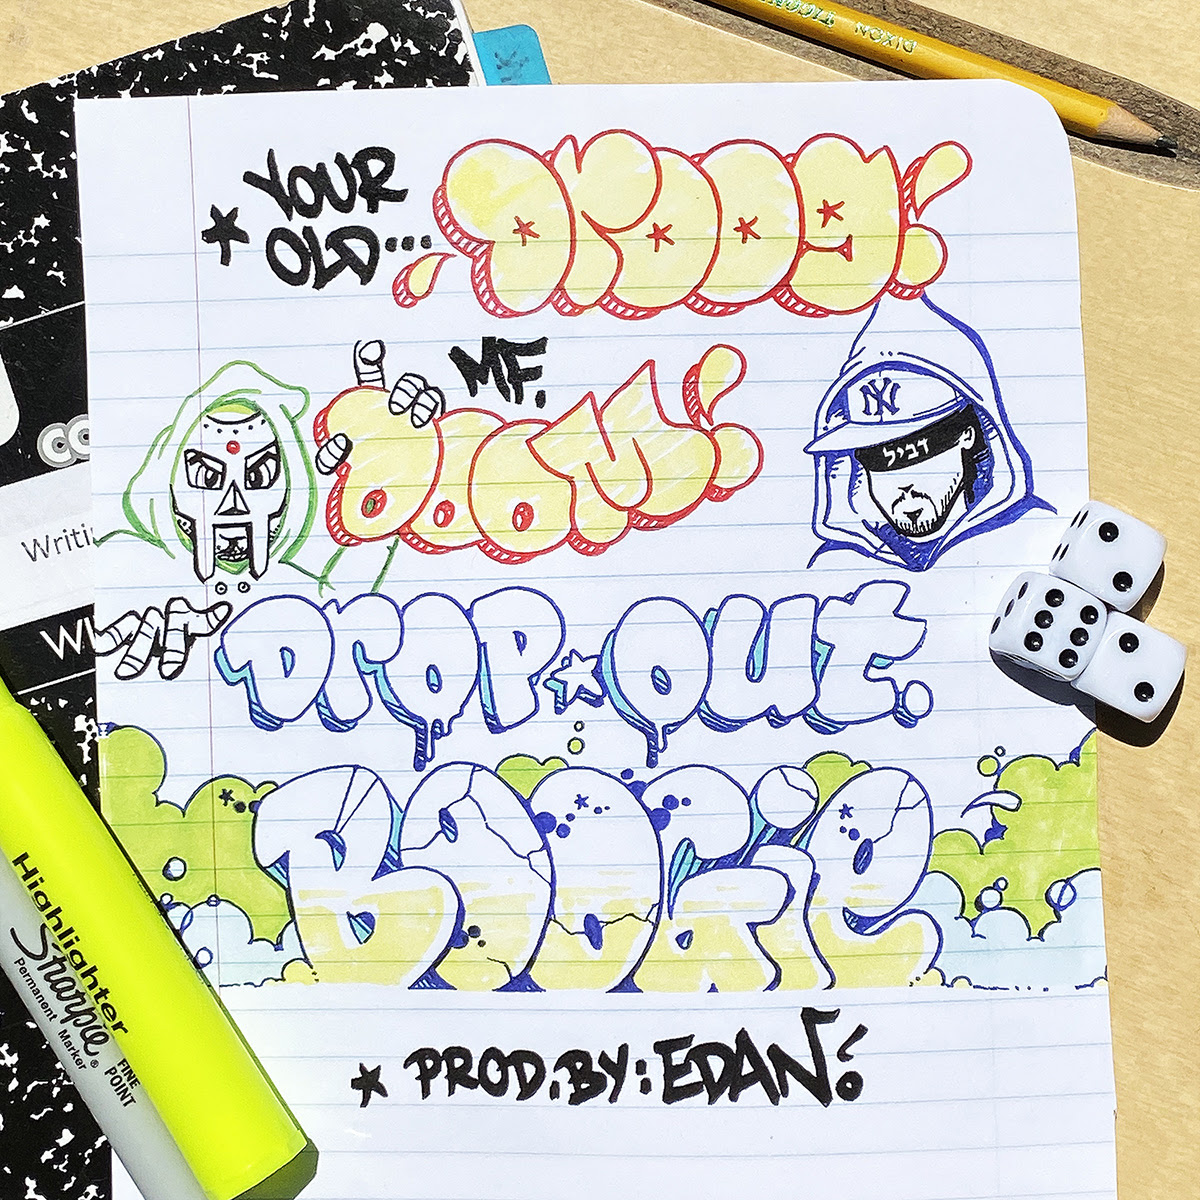 The source |  Your old Droog X MF DOOM track takes us back to hip hop with 'Dropout Boogie'